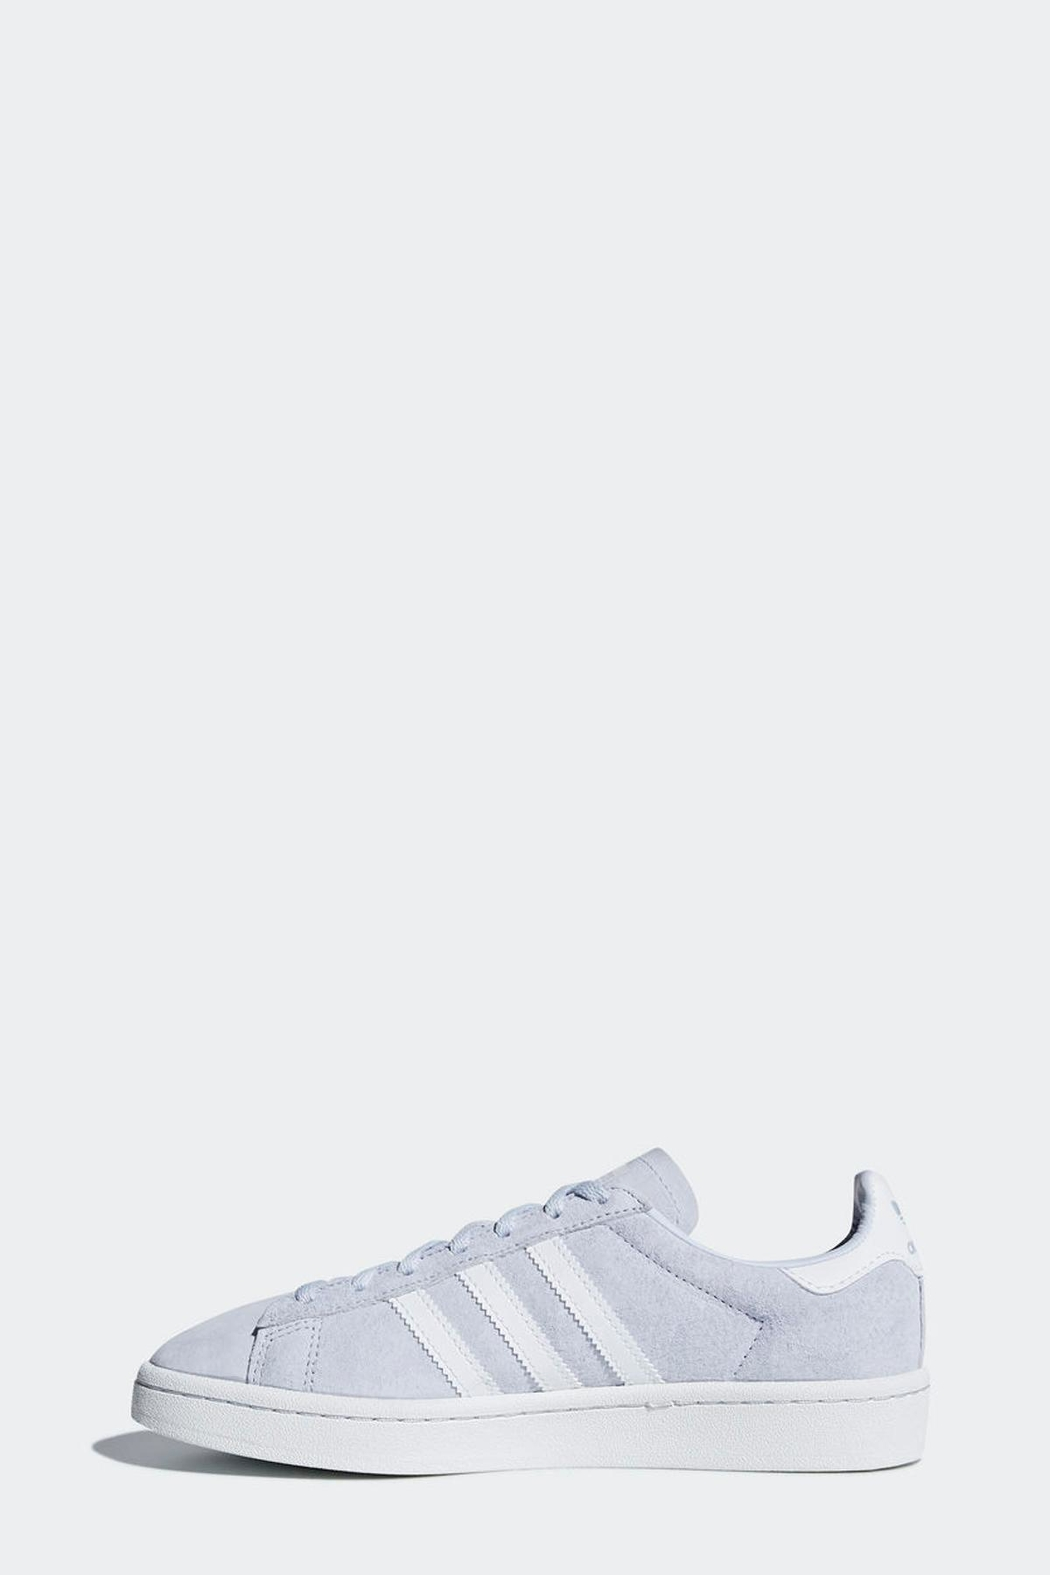 adidas Campus Shoes Blue - Main Image